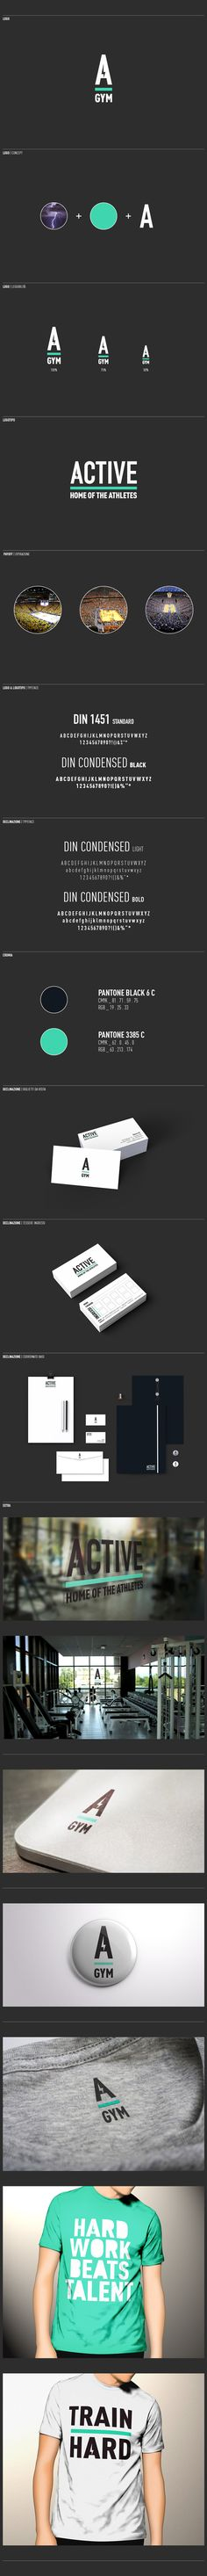 Active Gym by Ivan Moreale, via Behance